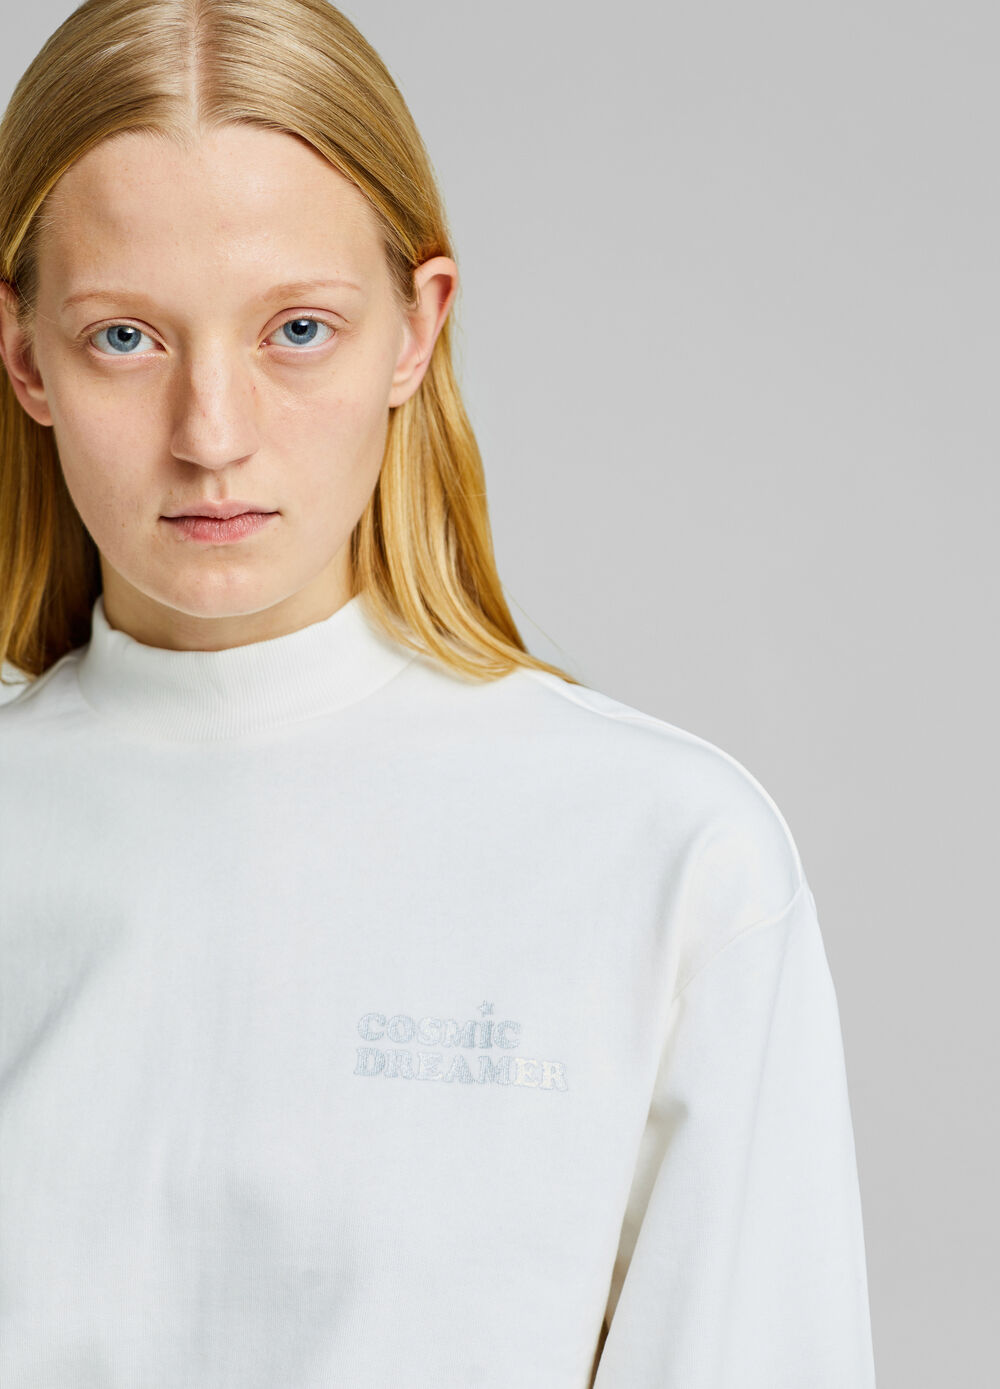 High-neck sweatshirt with lettering embroidery